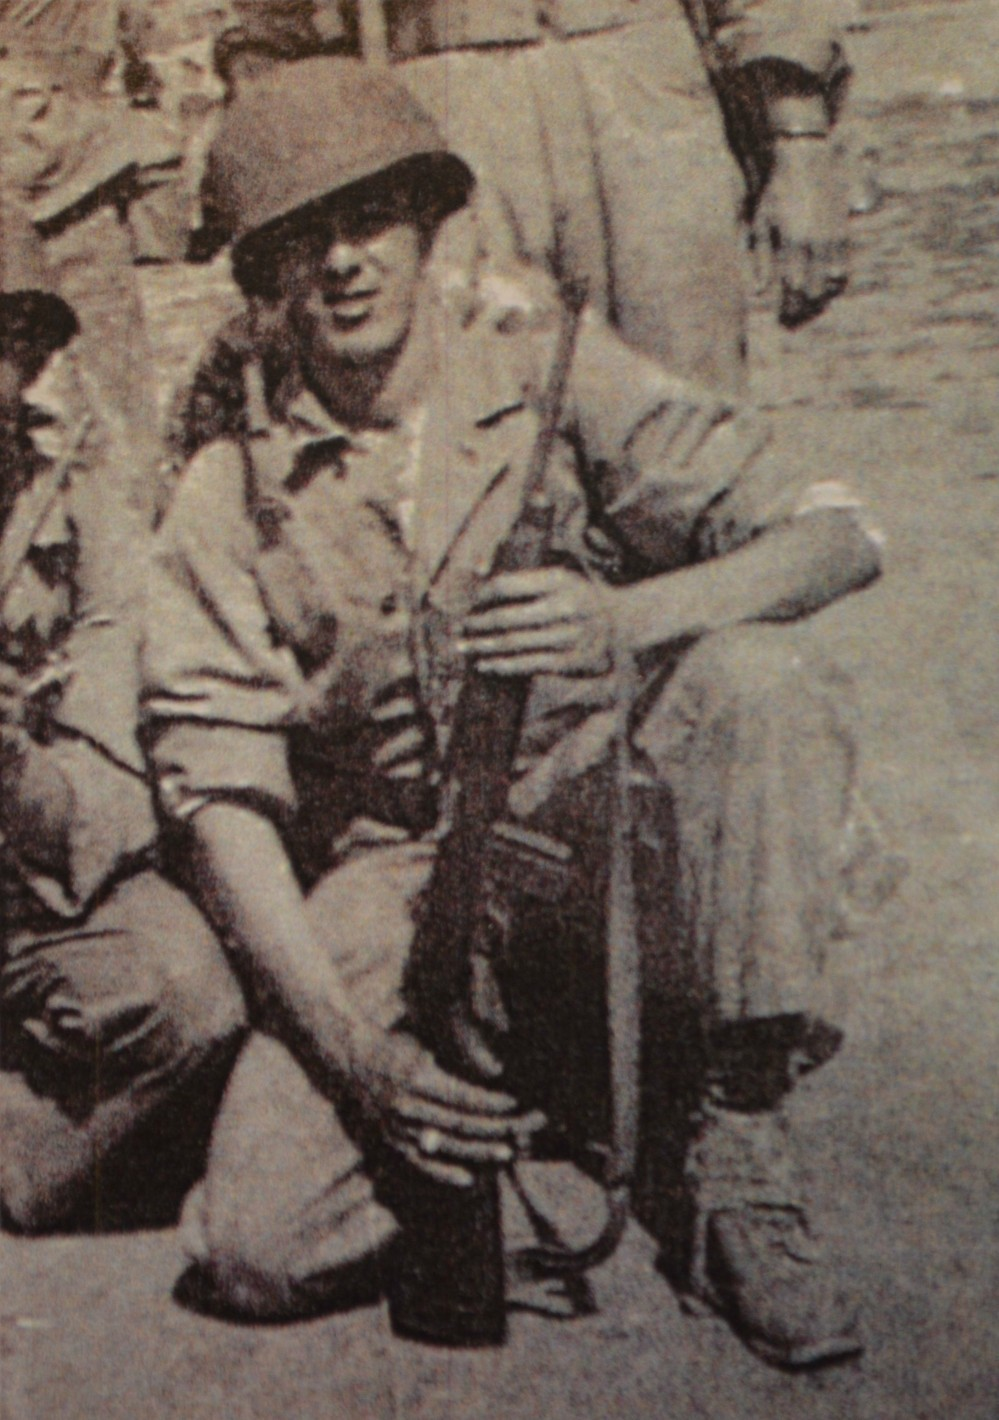 James with M1 Carbine: Camp Pendleton, CA 1944